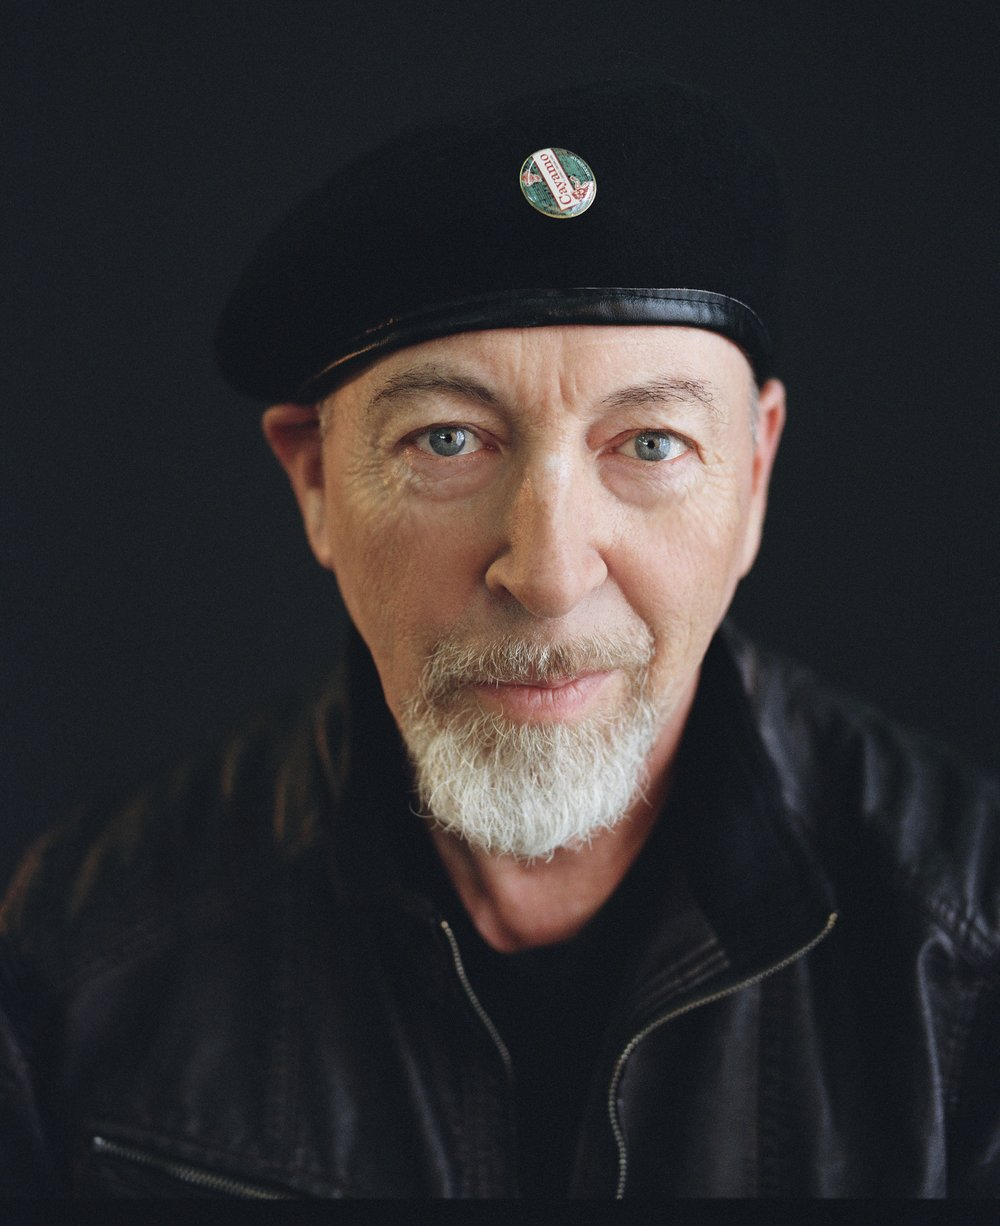 Richard Thompson Solo/Acoustic Performance at Landmark on Main Street 4/19 @ 7:30 PM @MWBshows